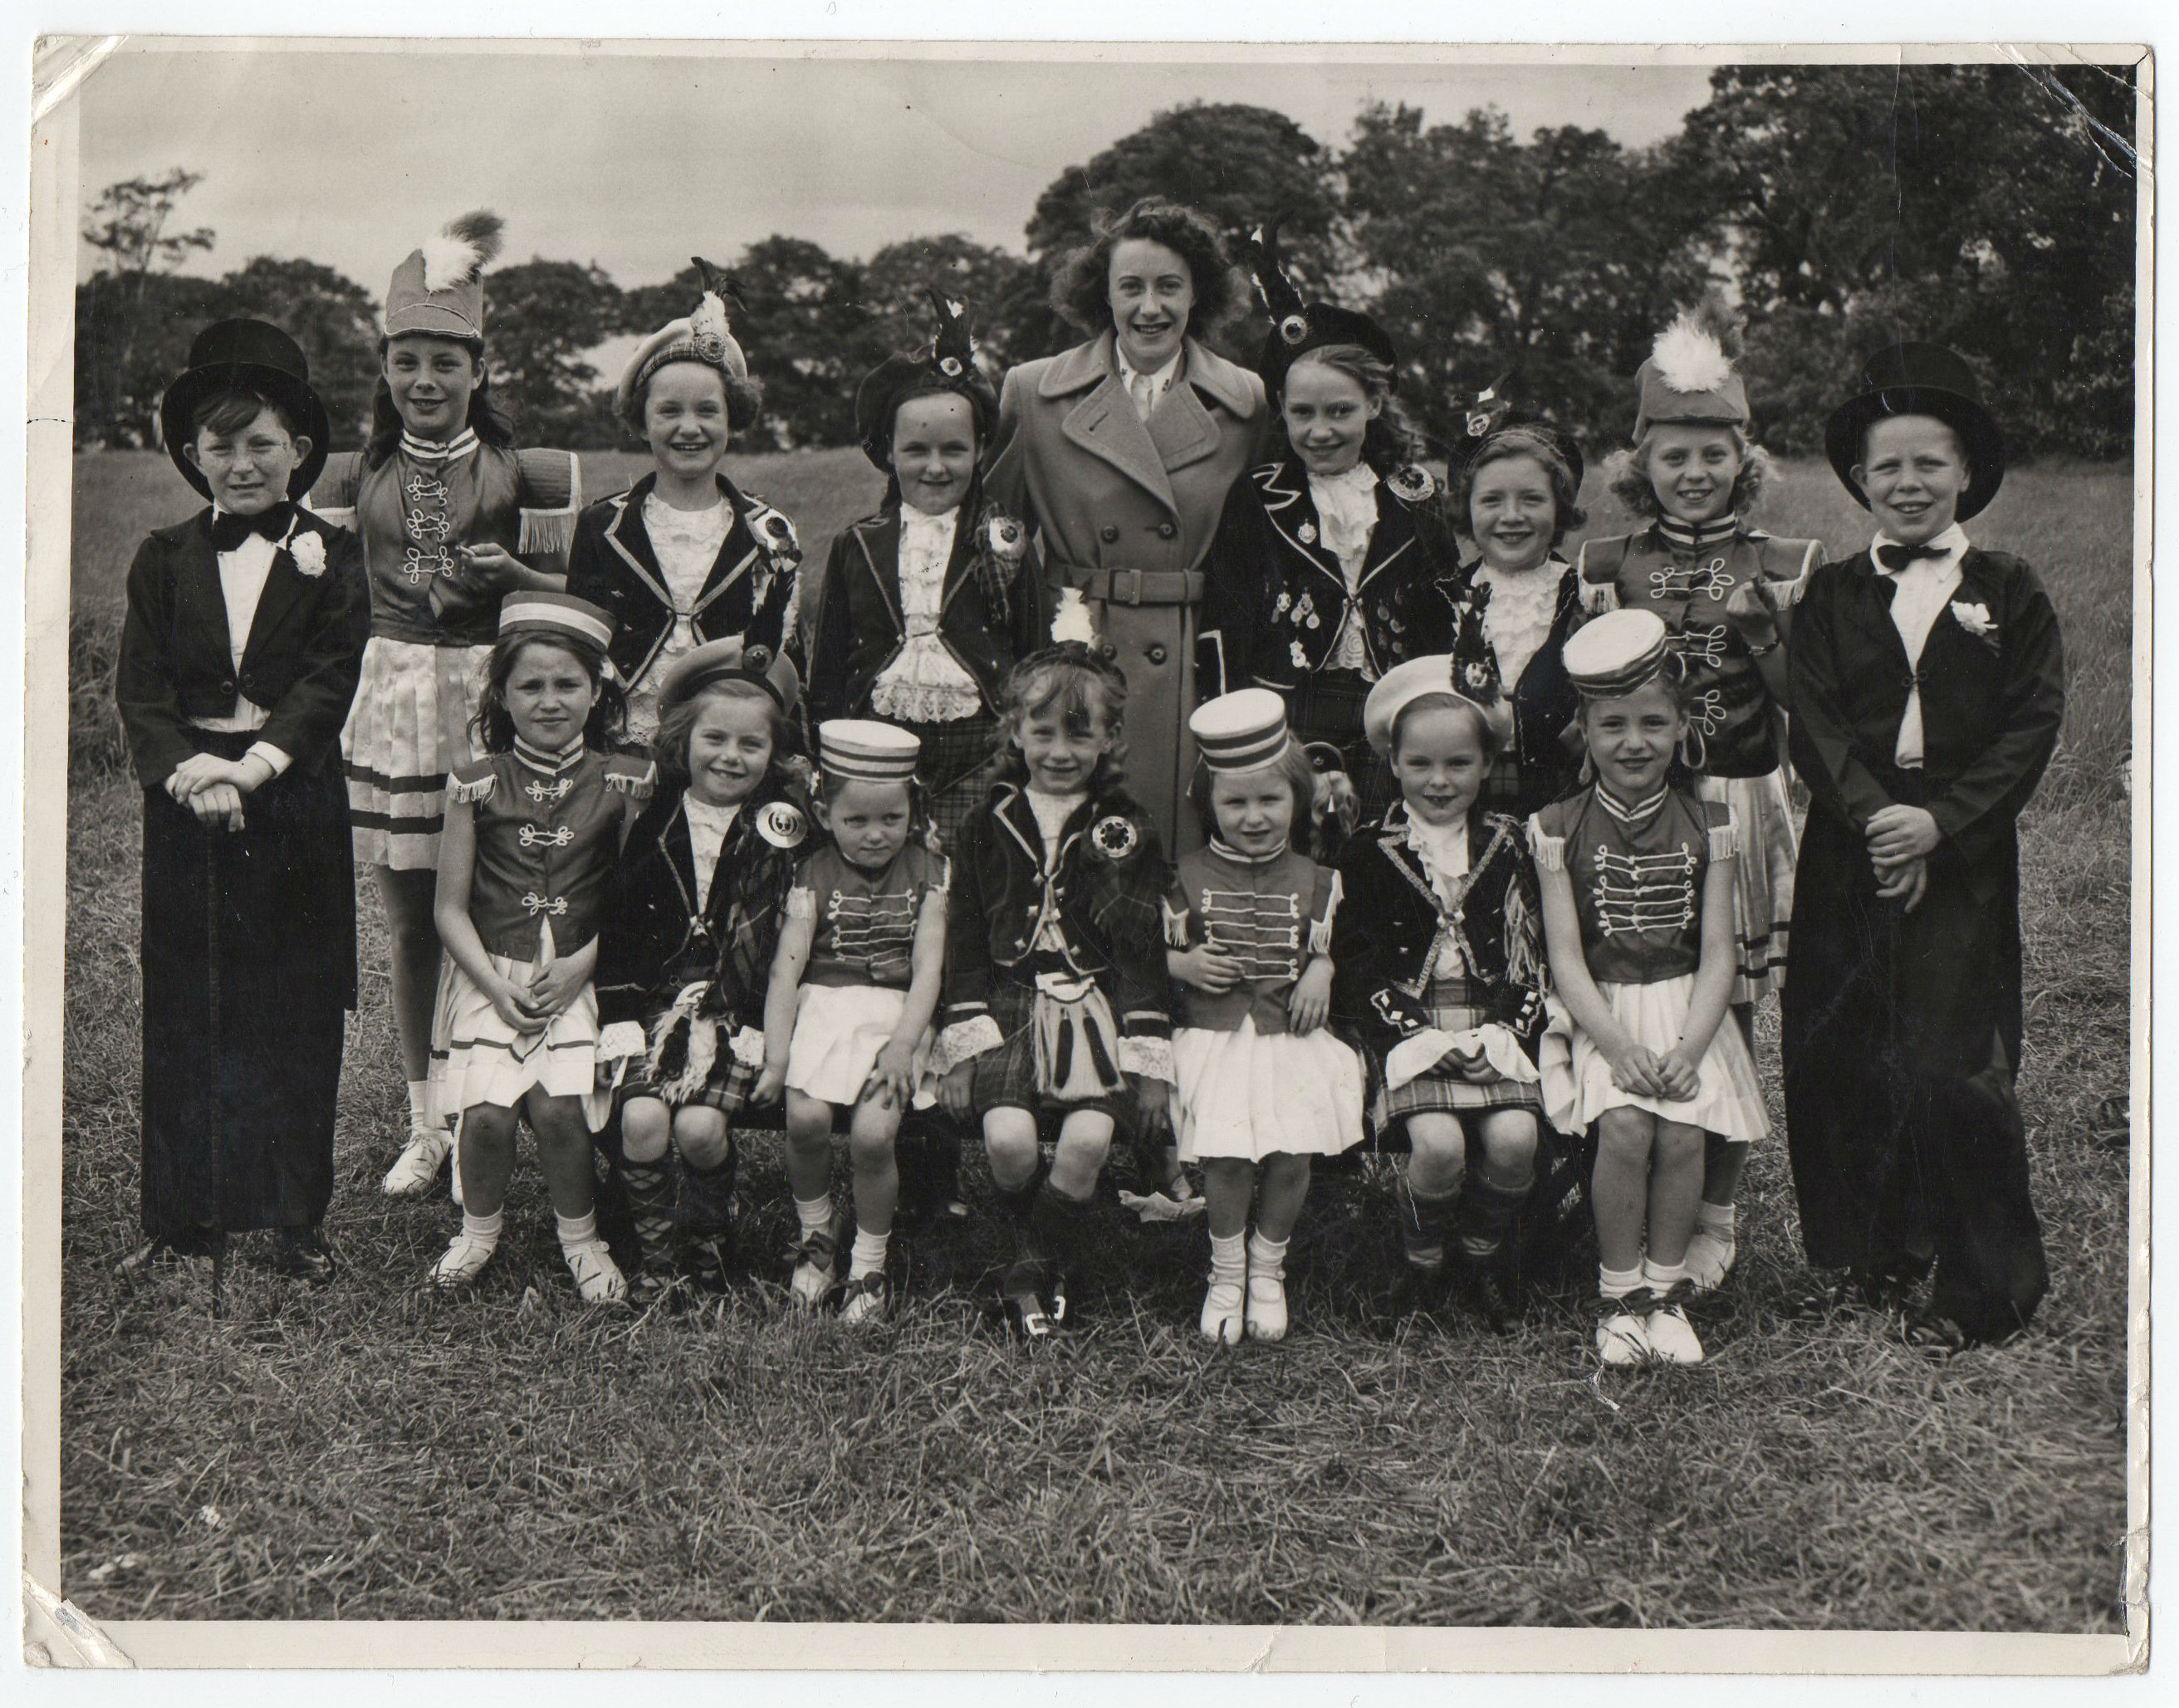 Kathleen Glancy's Highland Dancing Class at a gala day